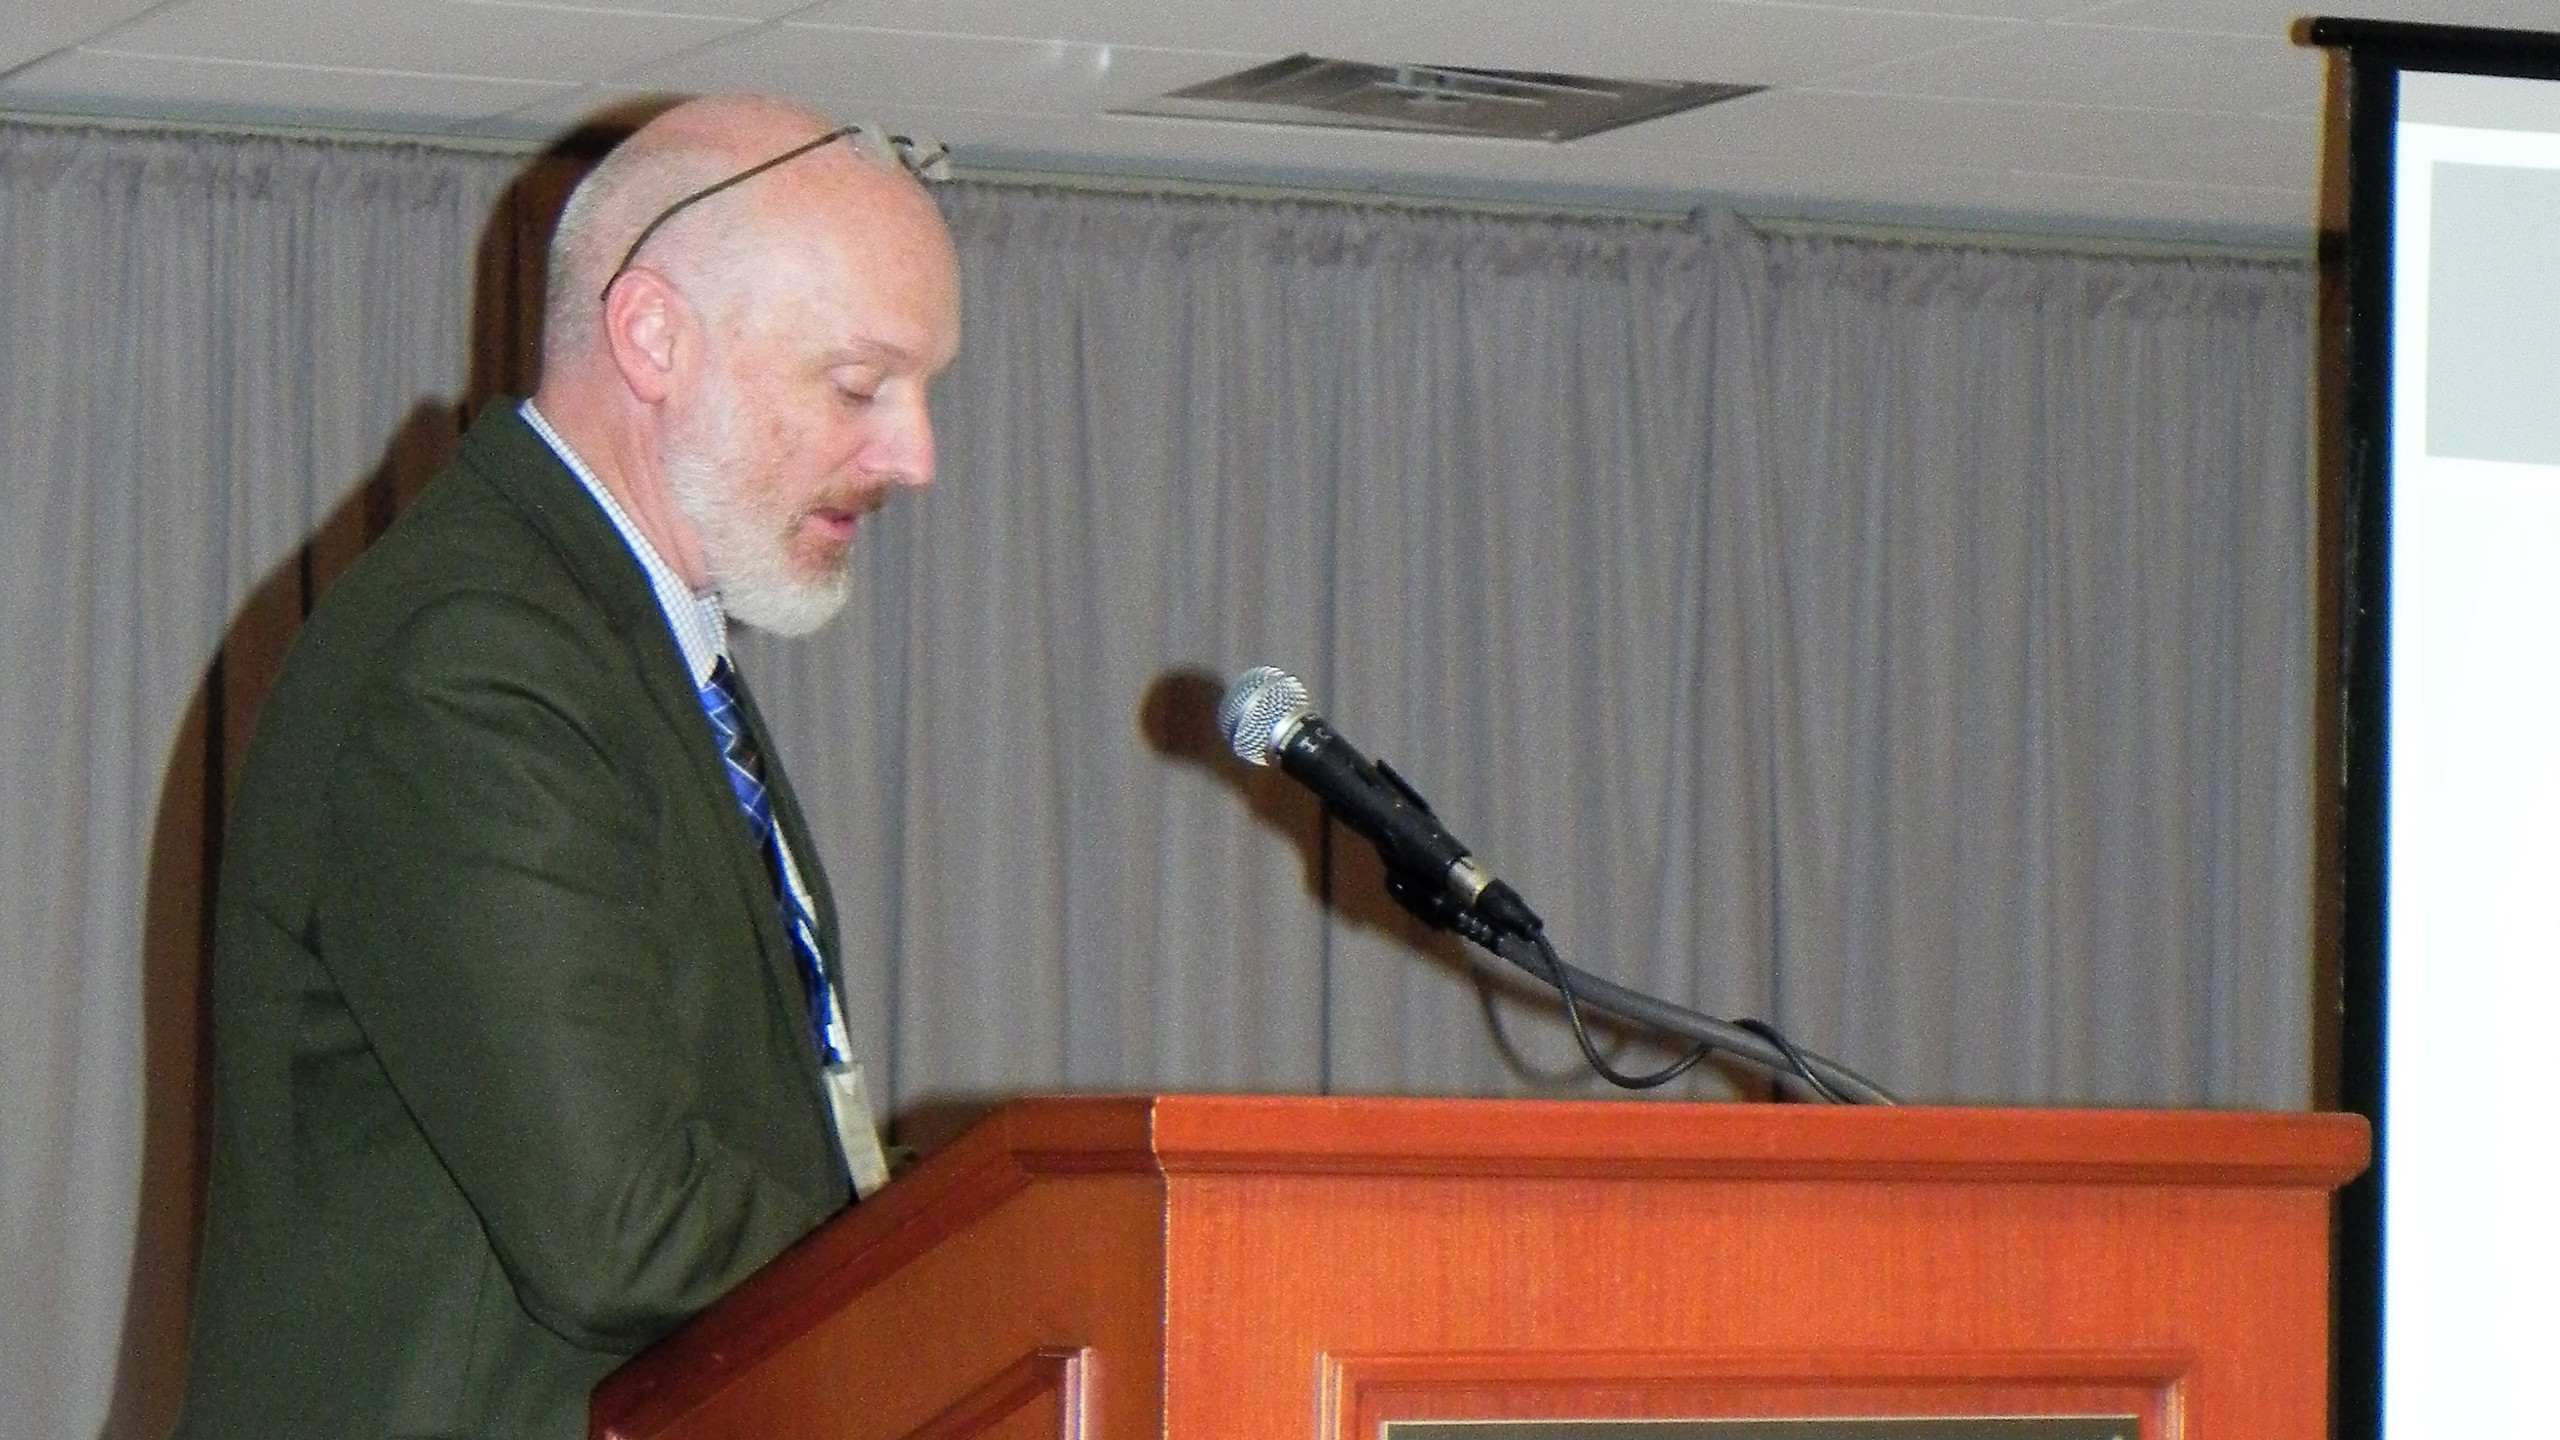 PM's Jeff Gonyeau presents at MHPC 2